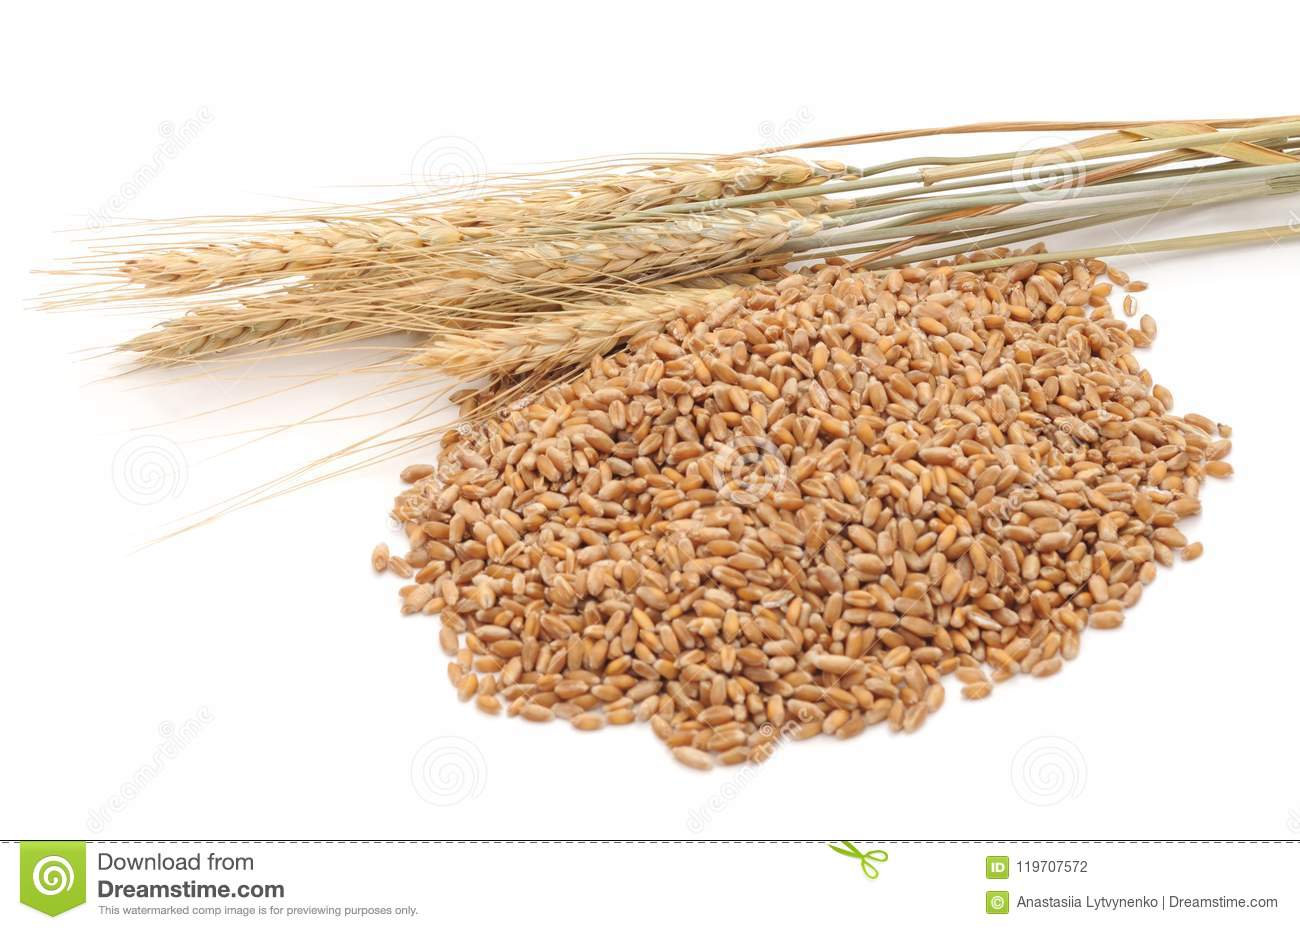 Whole grain of wheat  stock photo  Image of little, storage